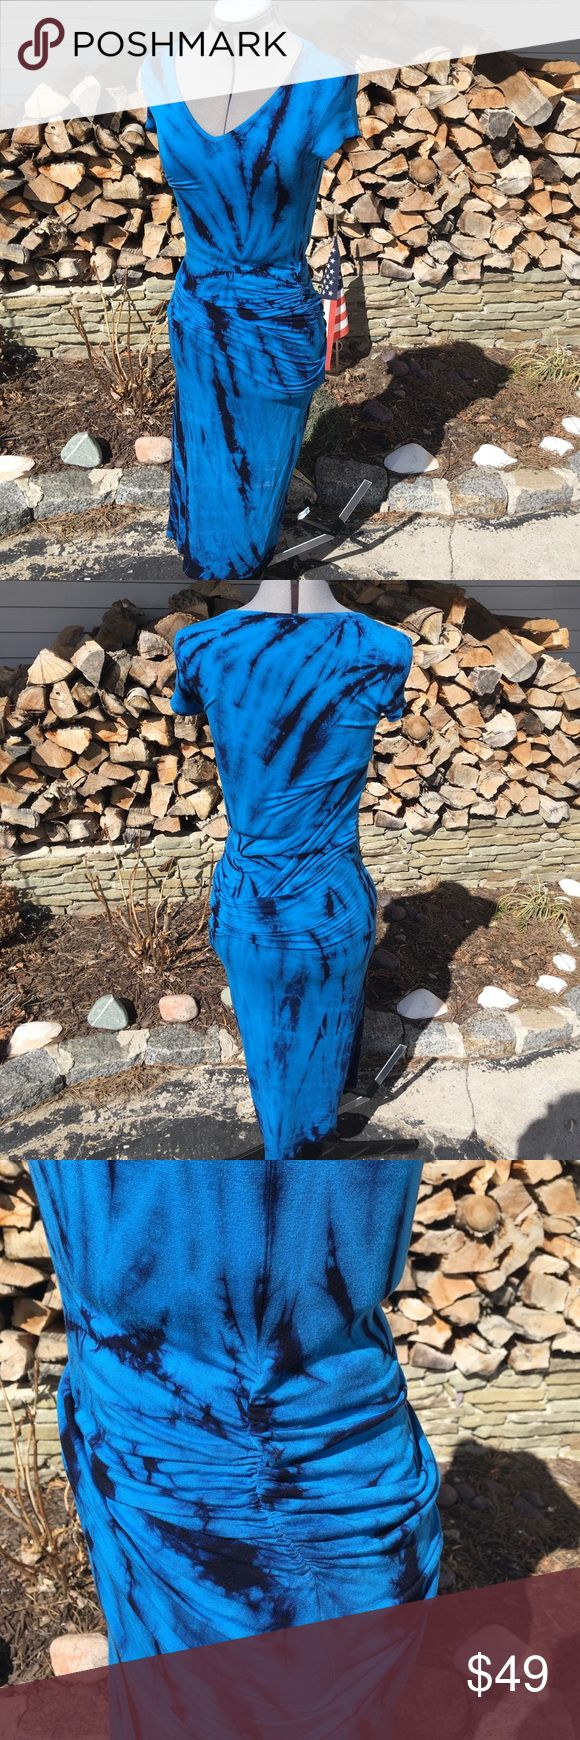 Stunning New Blue Dress Young Fabulous and Broke tight maxi dress. Stretchy, brand new, ruching on the sides. Look awesome while comfy! Young Fabulous & Broke Dresses Maxi